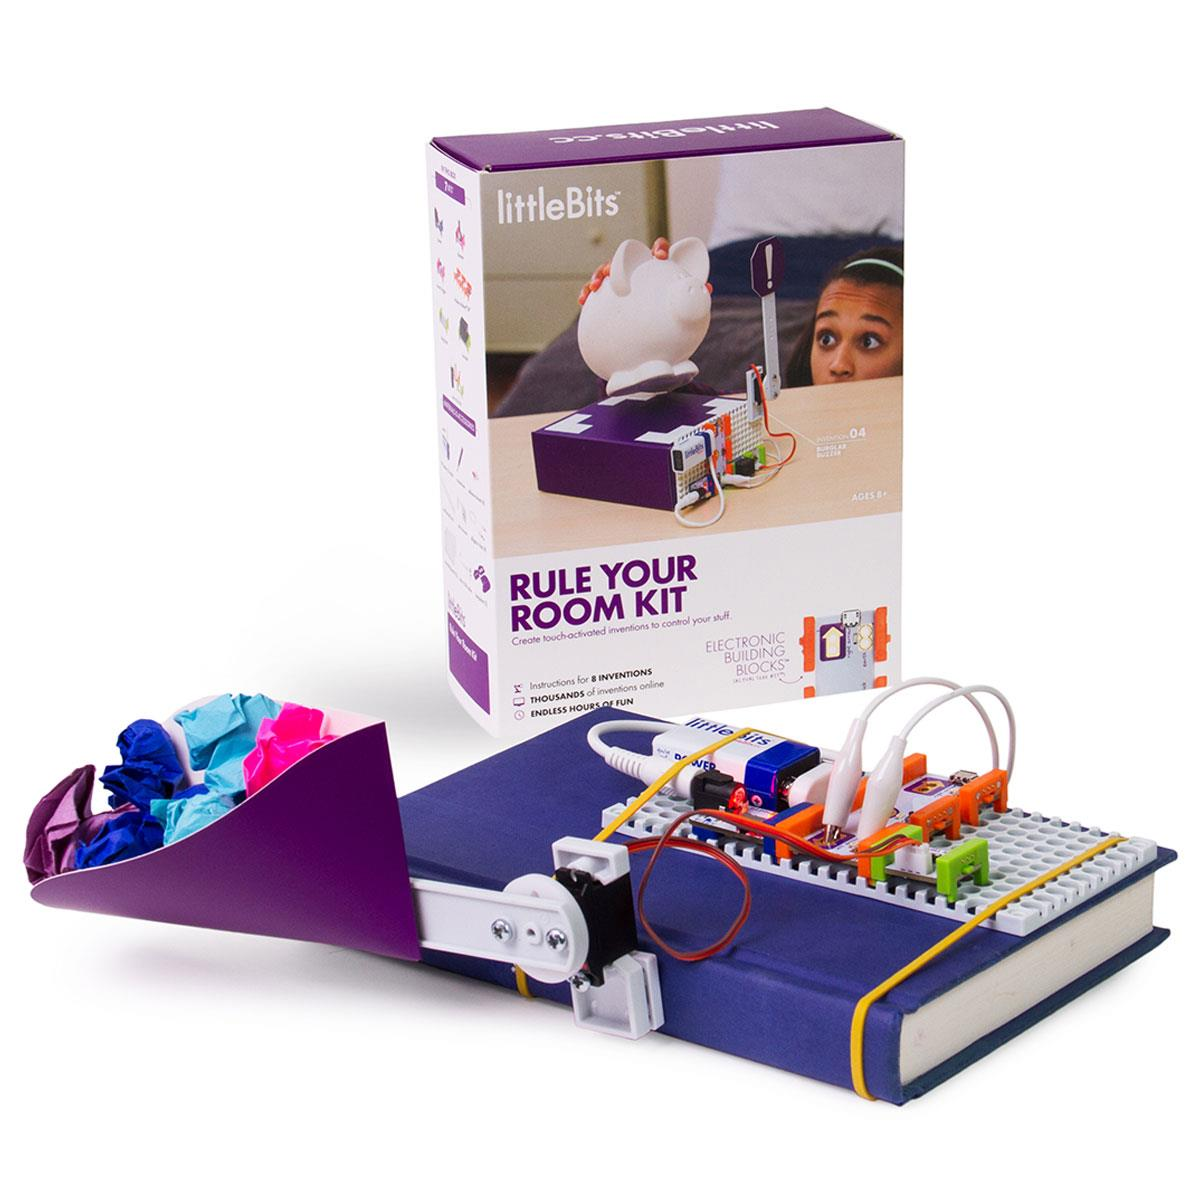 LittleBits / Rule Your Room